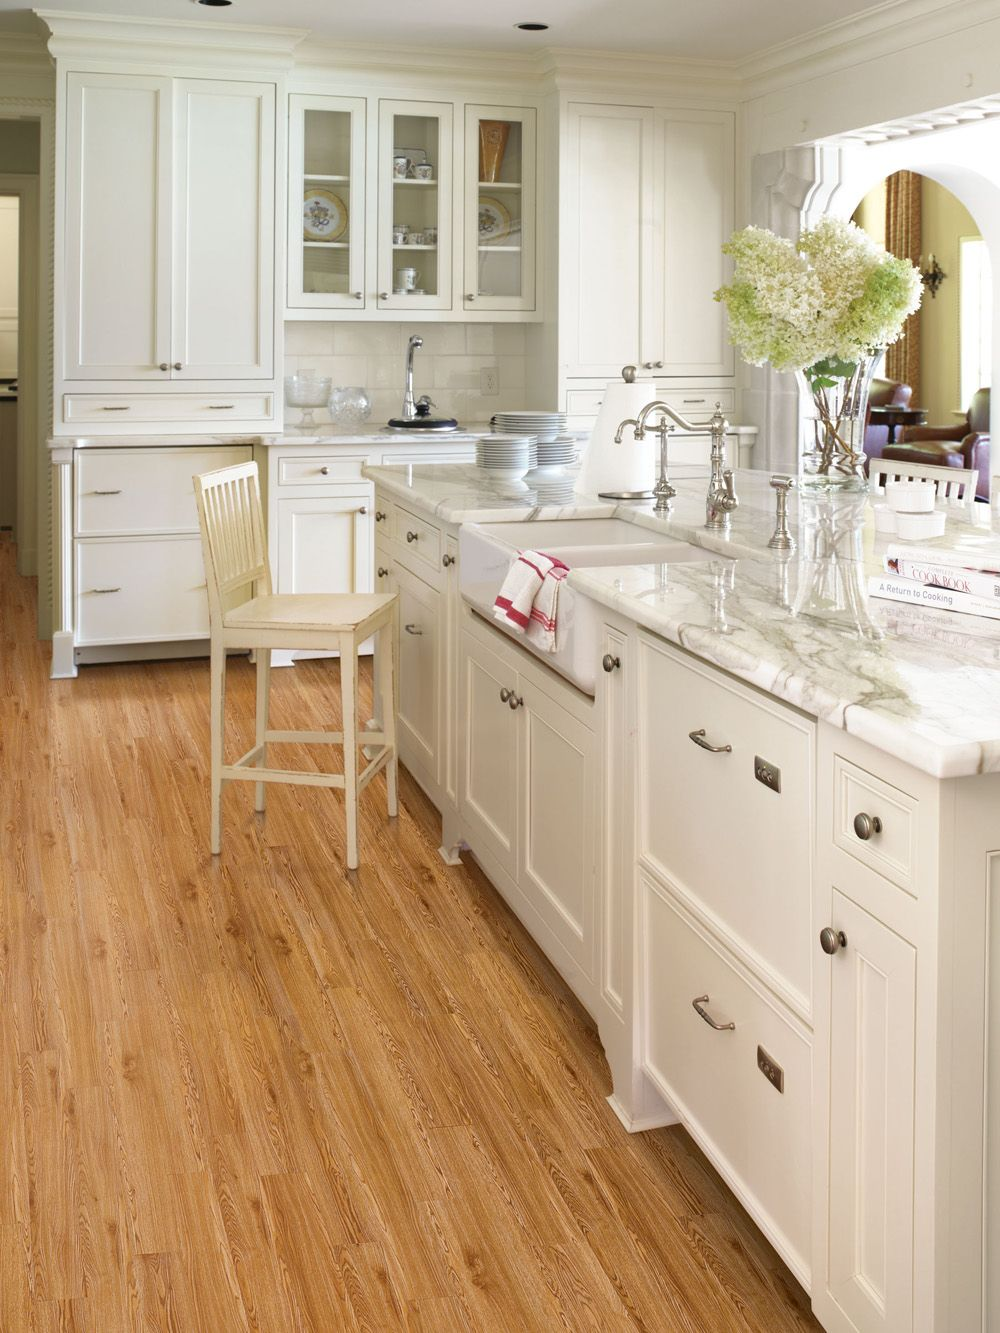 Hardwood Flooring 101 | Kitchen cabinet colors, White wood ...